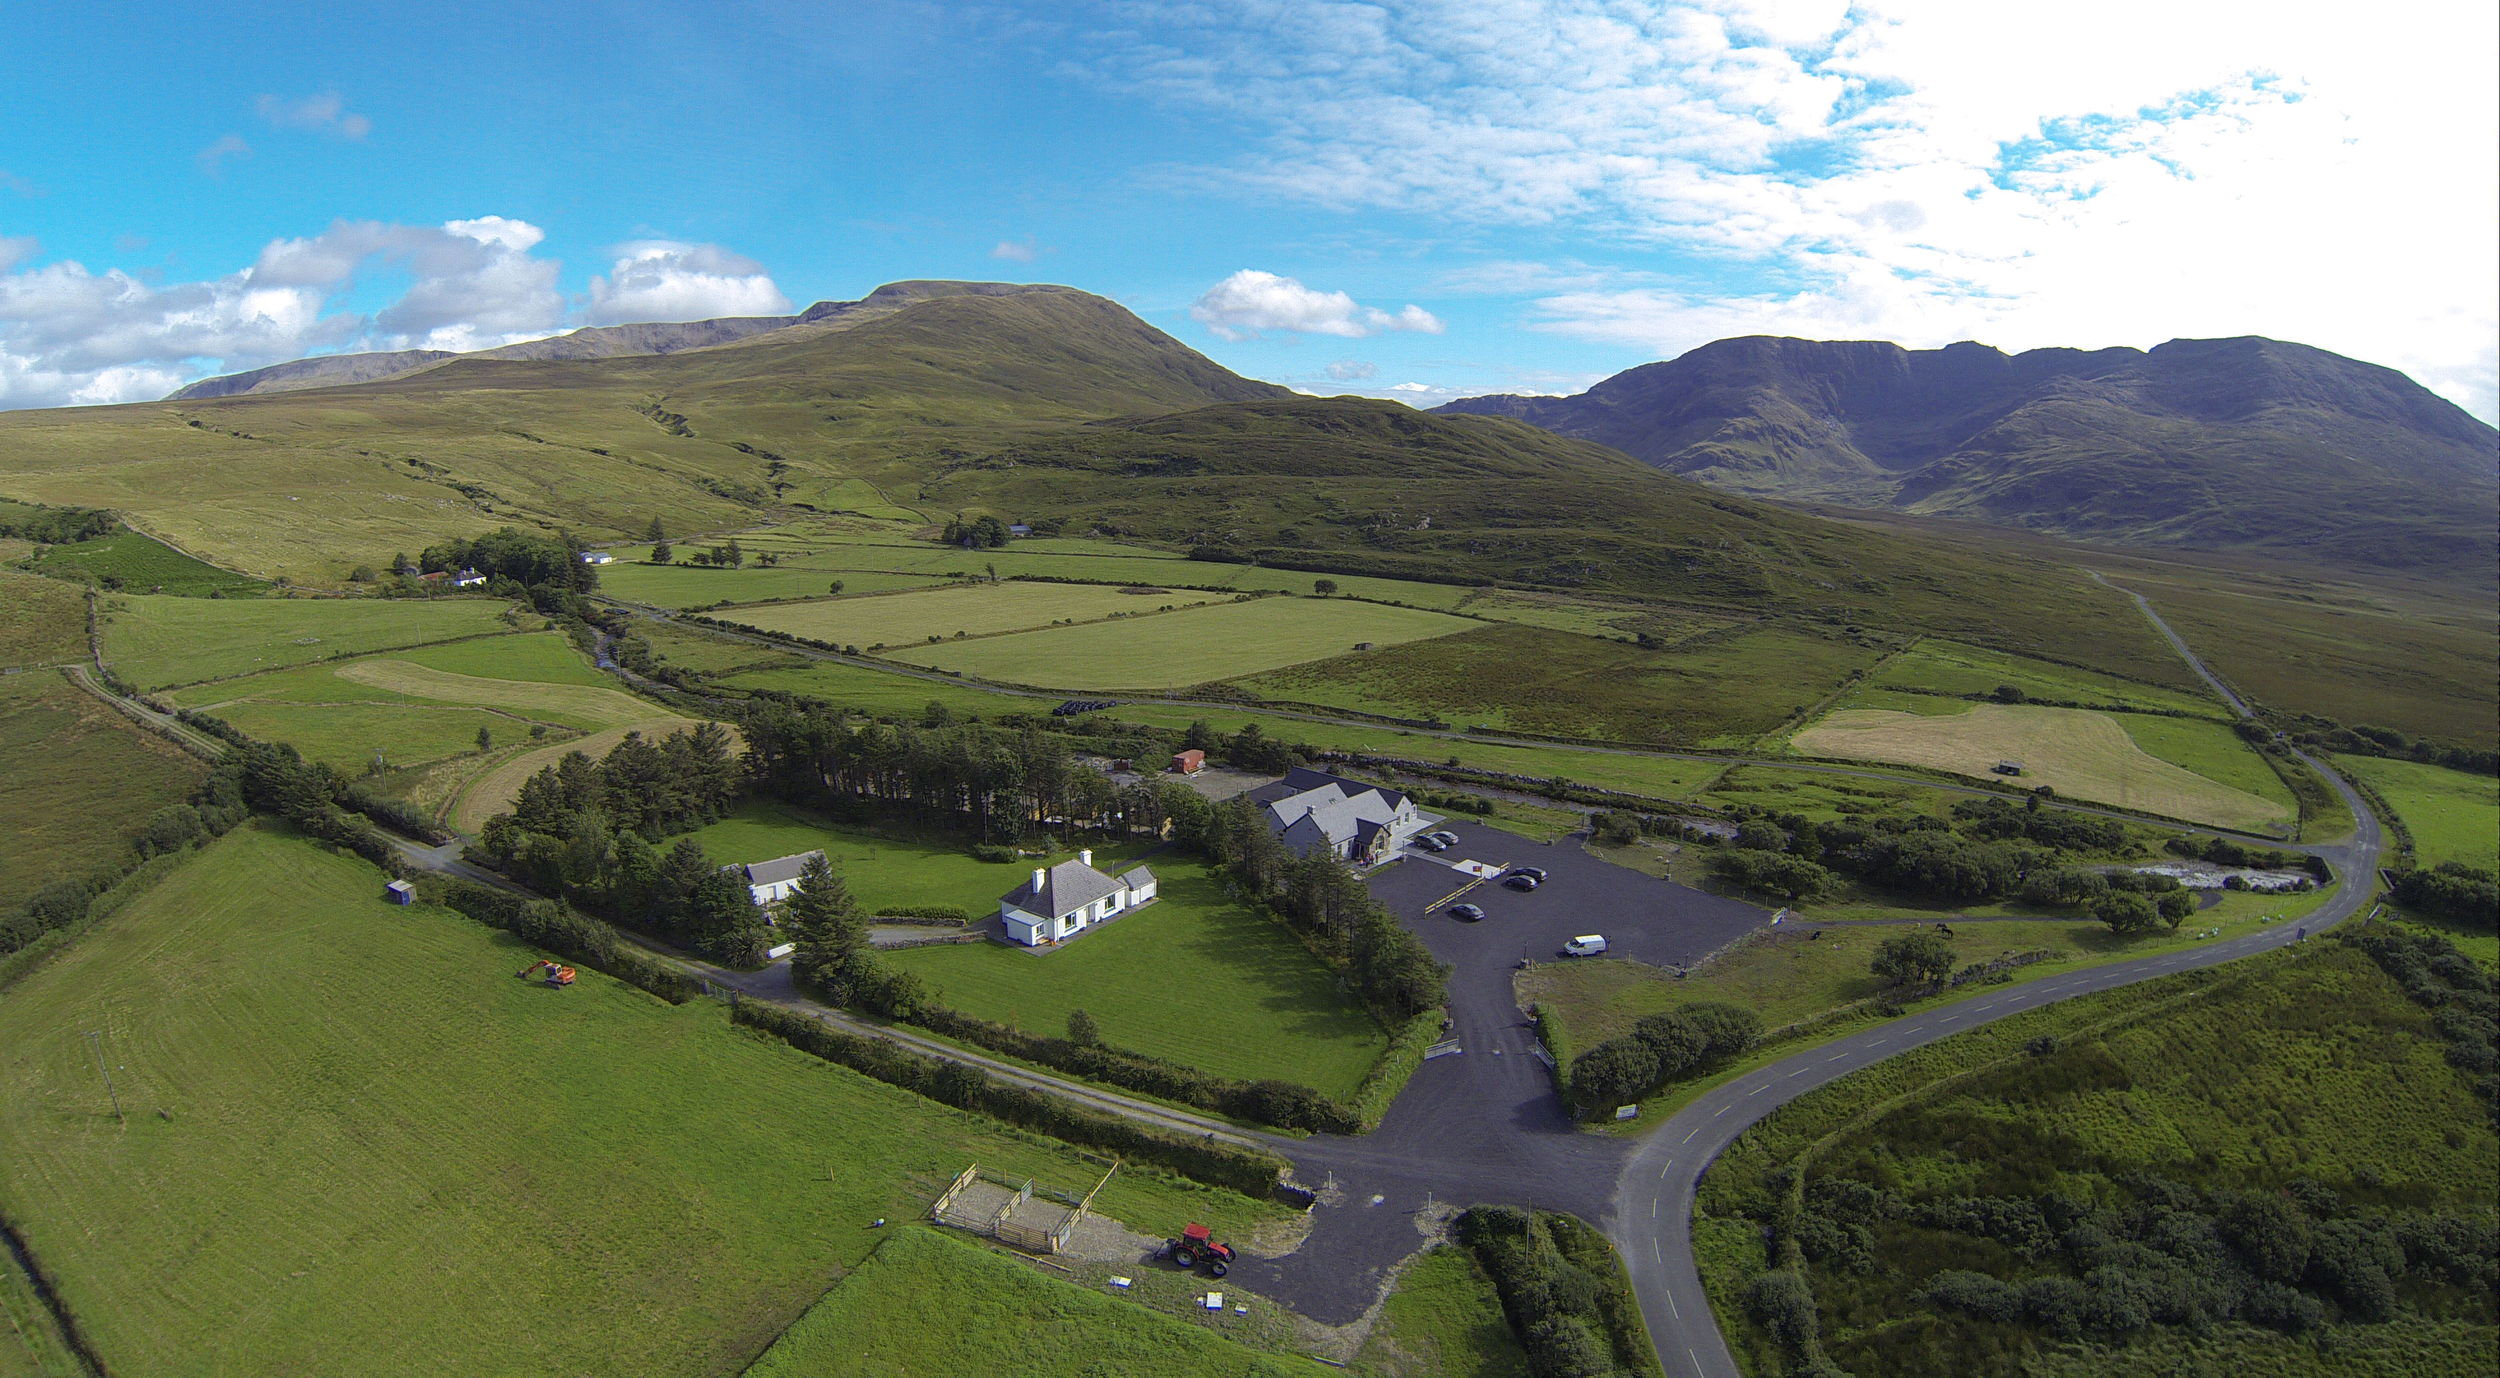 Such an amazing place to do some aerial filming.